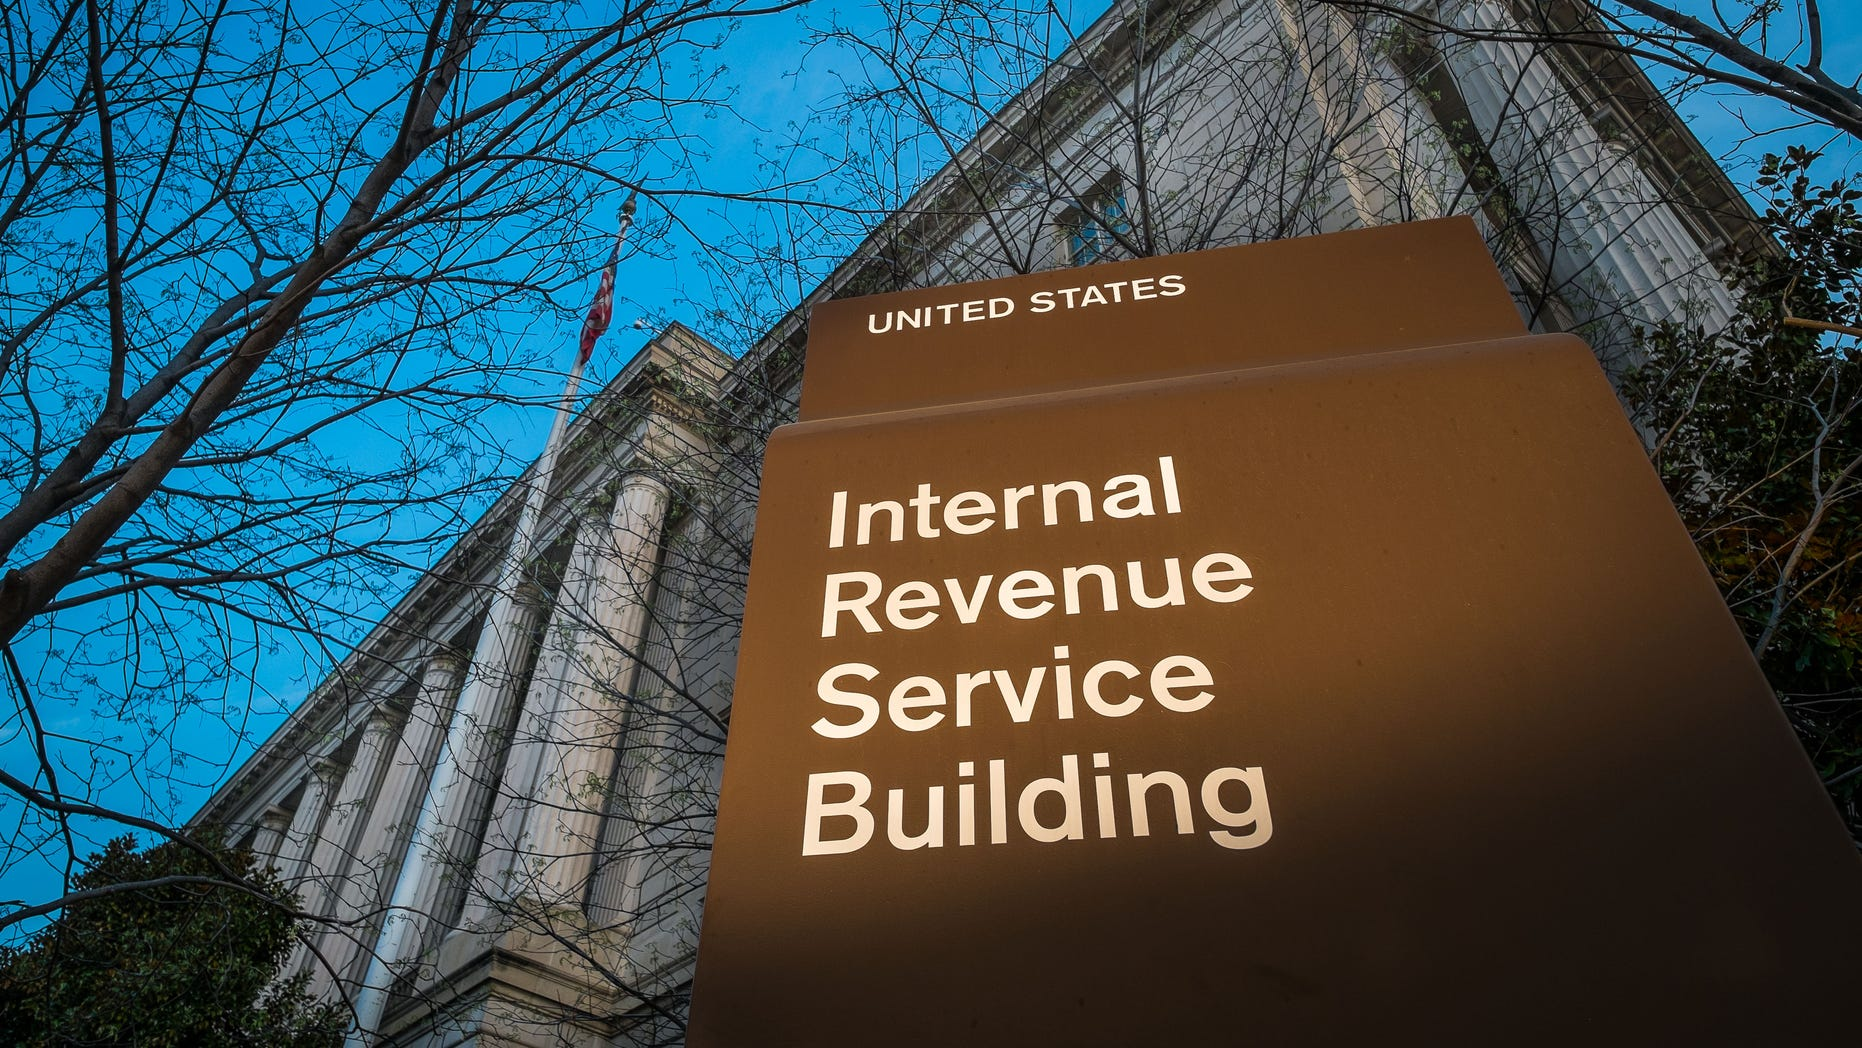 April 13, 2014: The headquarters of the Internal Revenue Service (IRS) in Washington.